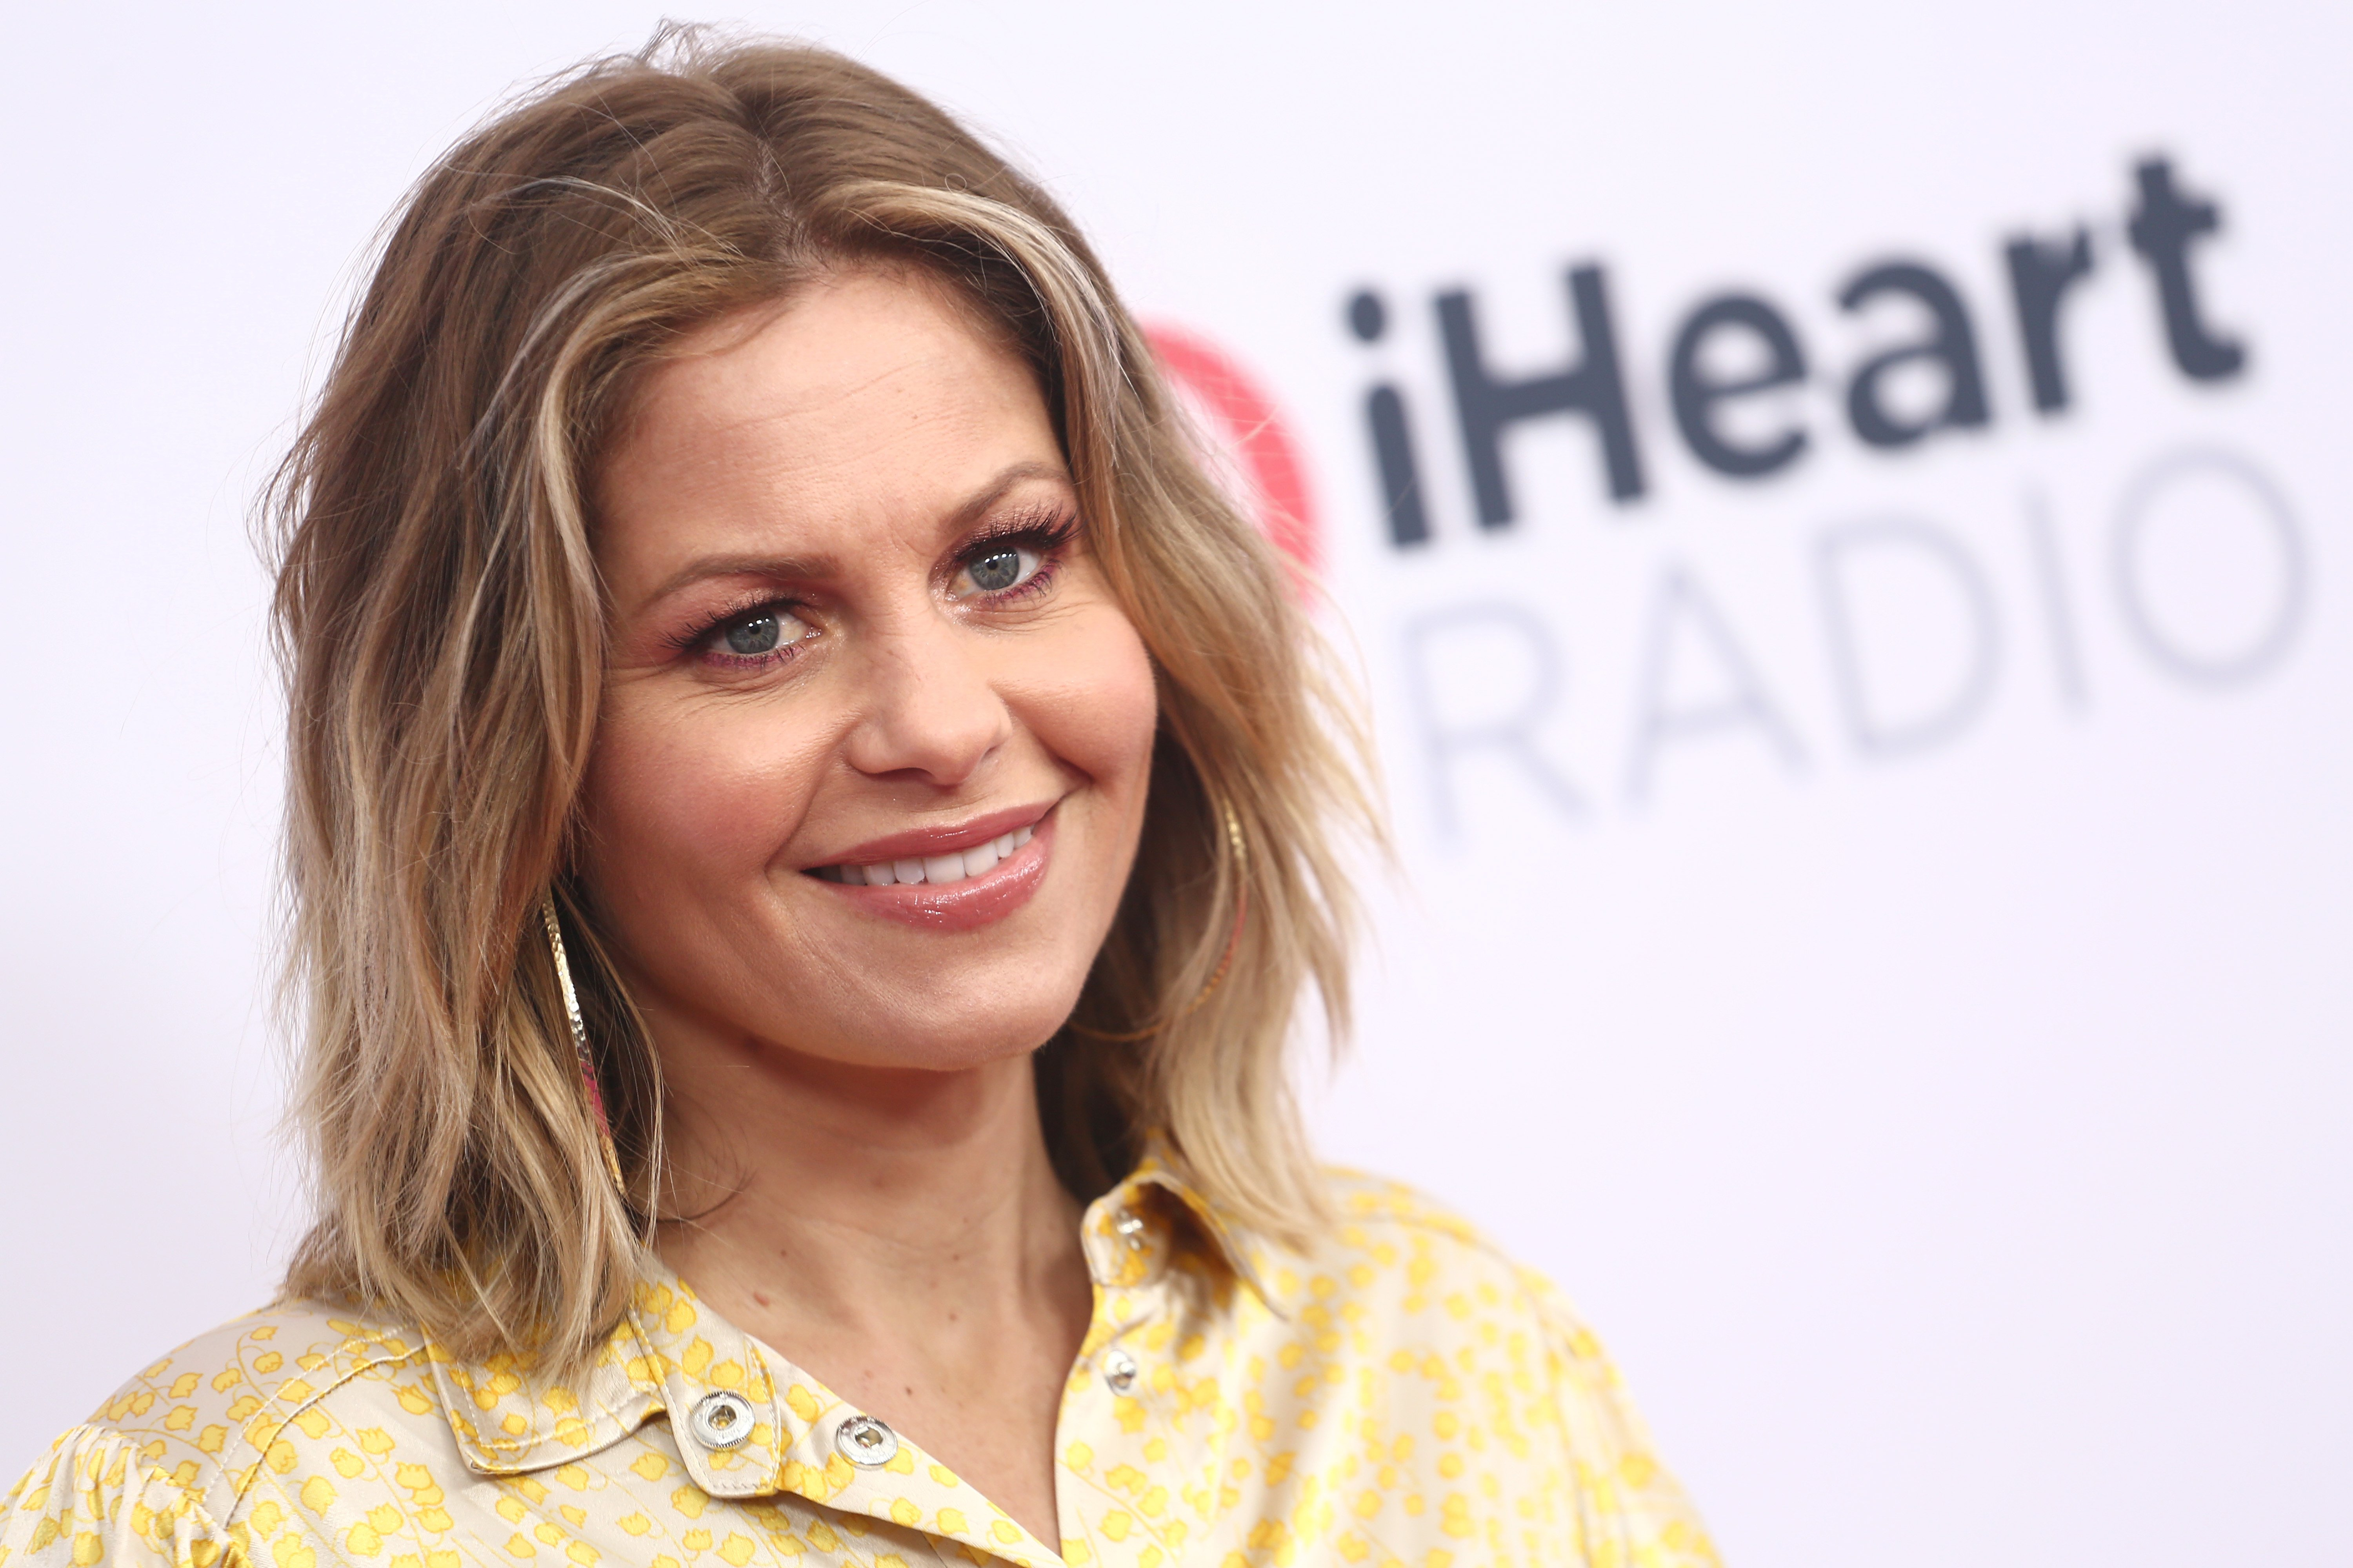 Candace Cameron Bure on June 01, 2019 in Carson, California | Source: Getty Images